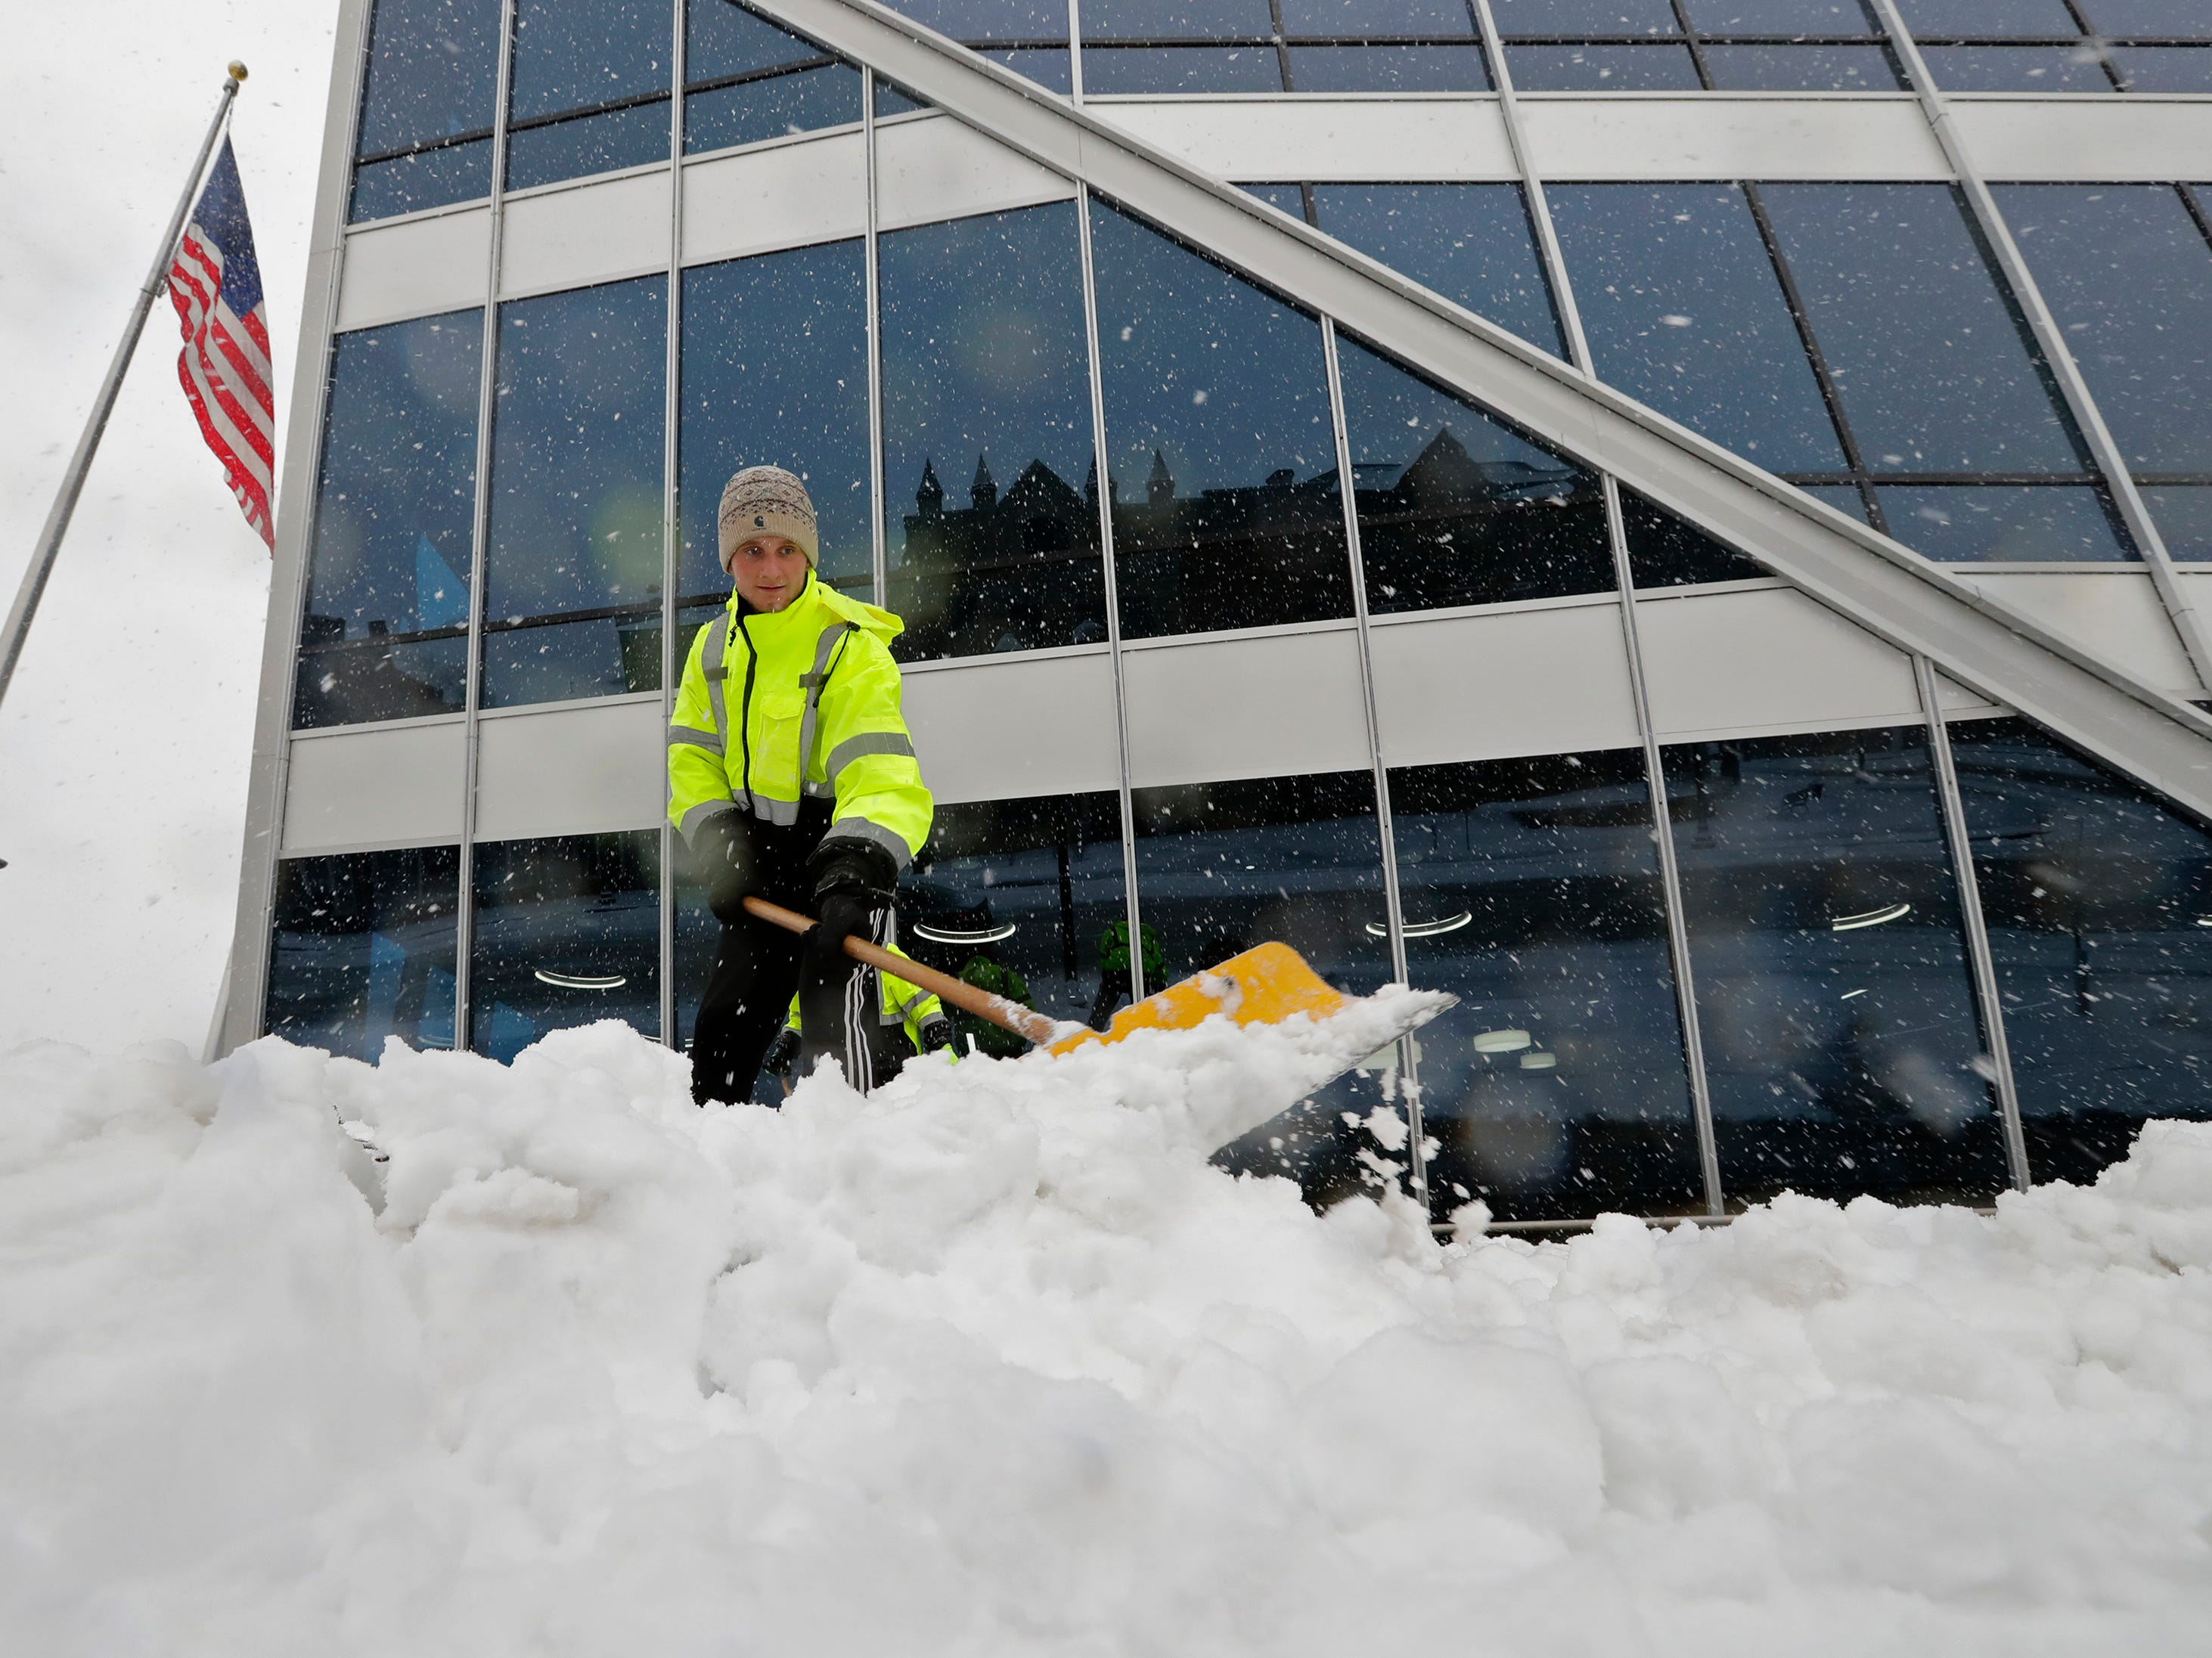 Clayton Leitner, an employee with Stumpf Creative Landscapes, shovels snow in front of the Menasha One building during a snow storm Monday, December 31, 2018, in downtown Menasha, Wis. Dan Powers/USA TODAY NETWORK-Wisconsin